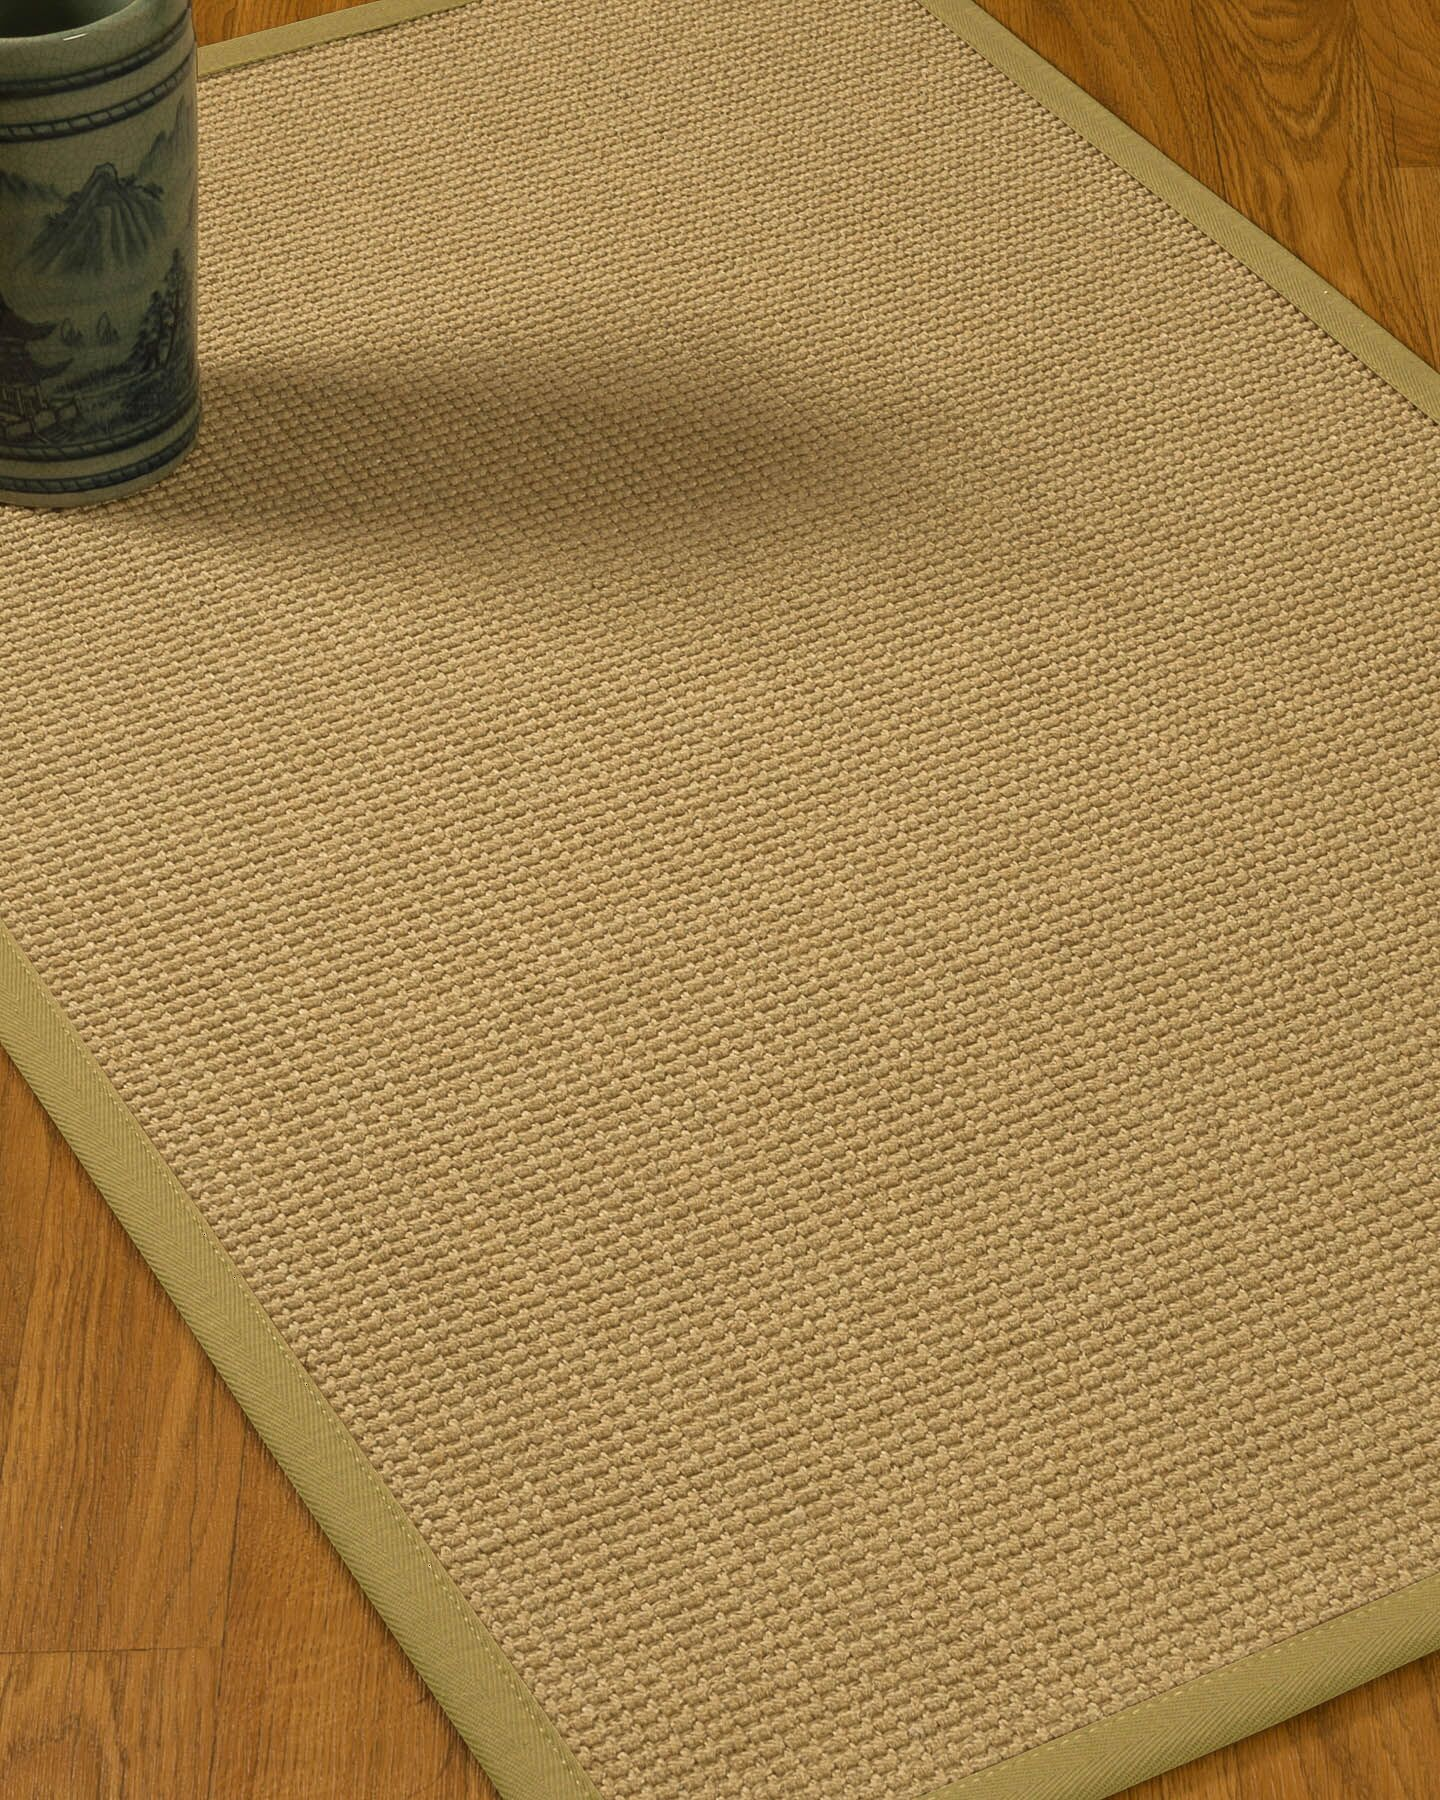 Jacobs Border Hand-Woven Beige/Natural Area Rug Rug Size: Rectangle 4' x 6', Rug Pad Included: Yes